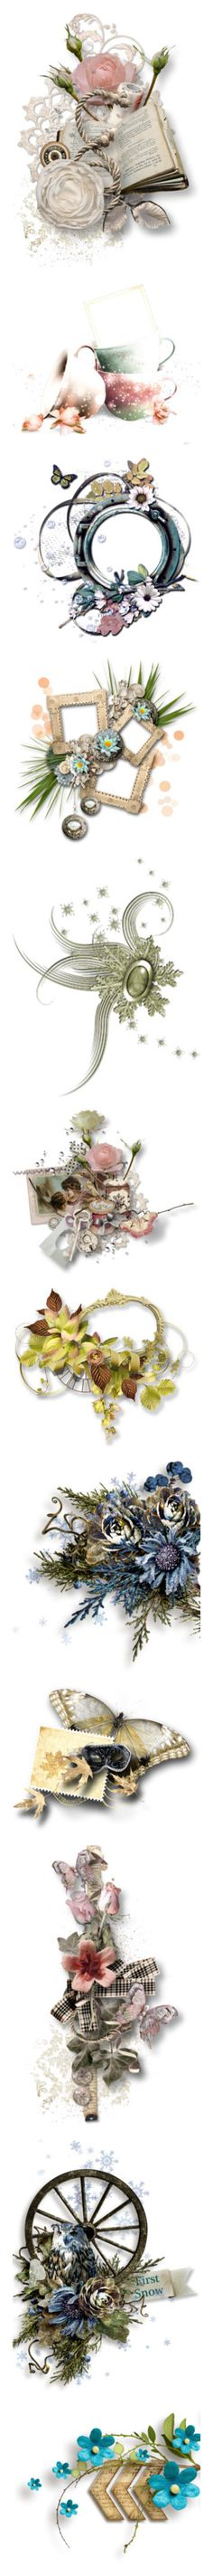 """Digital Scrap"" by borislava-zo3bi ❤ liked on Polyvore featuring fillers, flowers, backgrounds, clusters, effects, embellishments, detail, borders, saying and quotes"